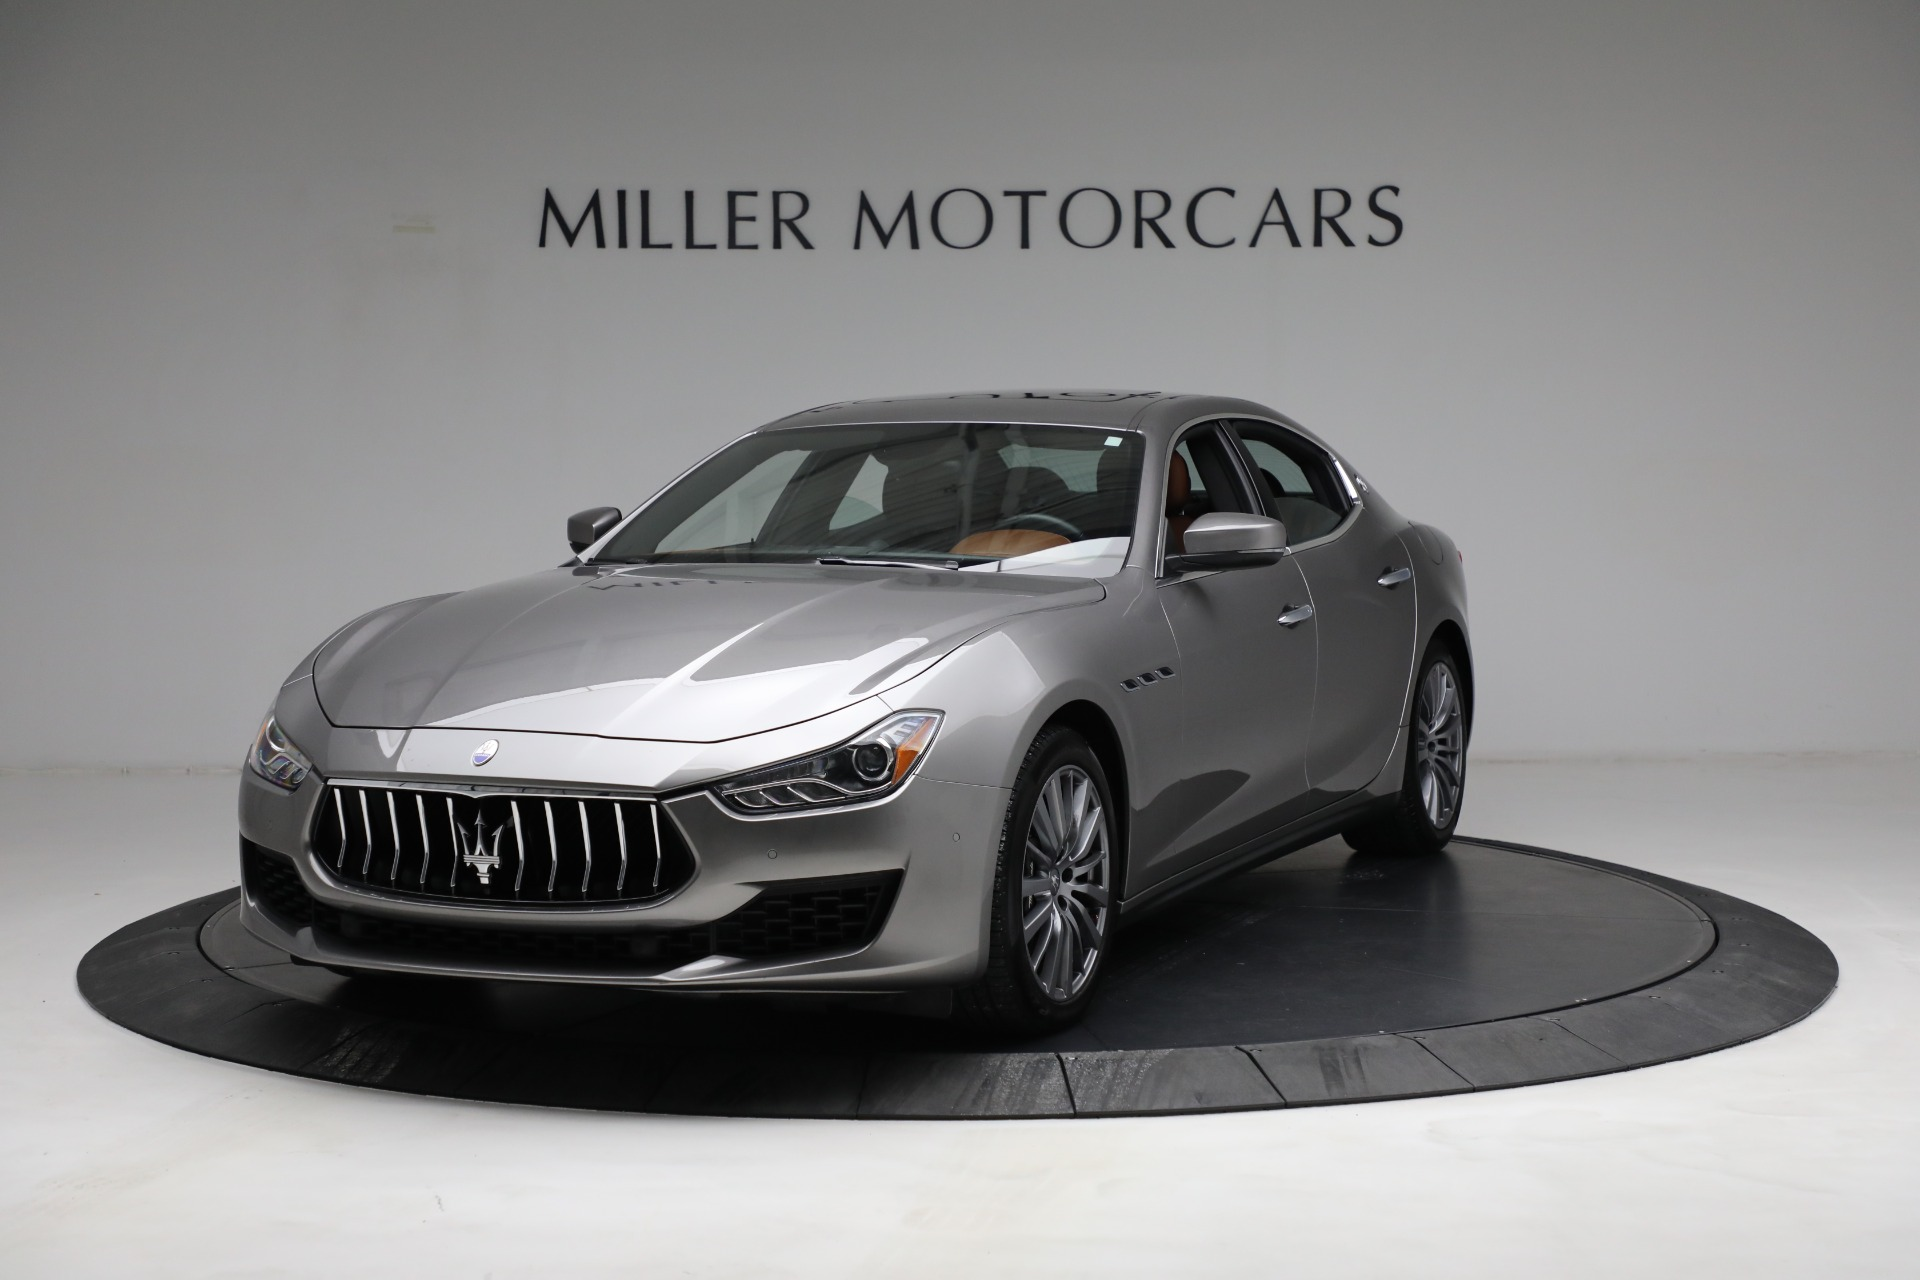 New 2018 Maserati Ghibli S Q4 for sale Sold at Bentley Greenwich in Greenwich CT 06830 1